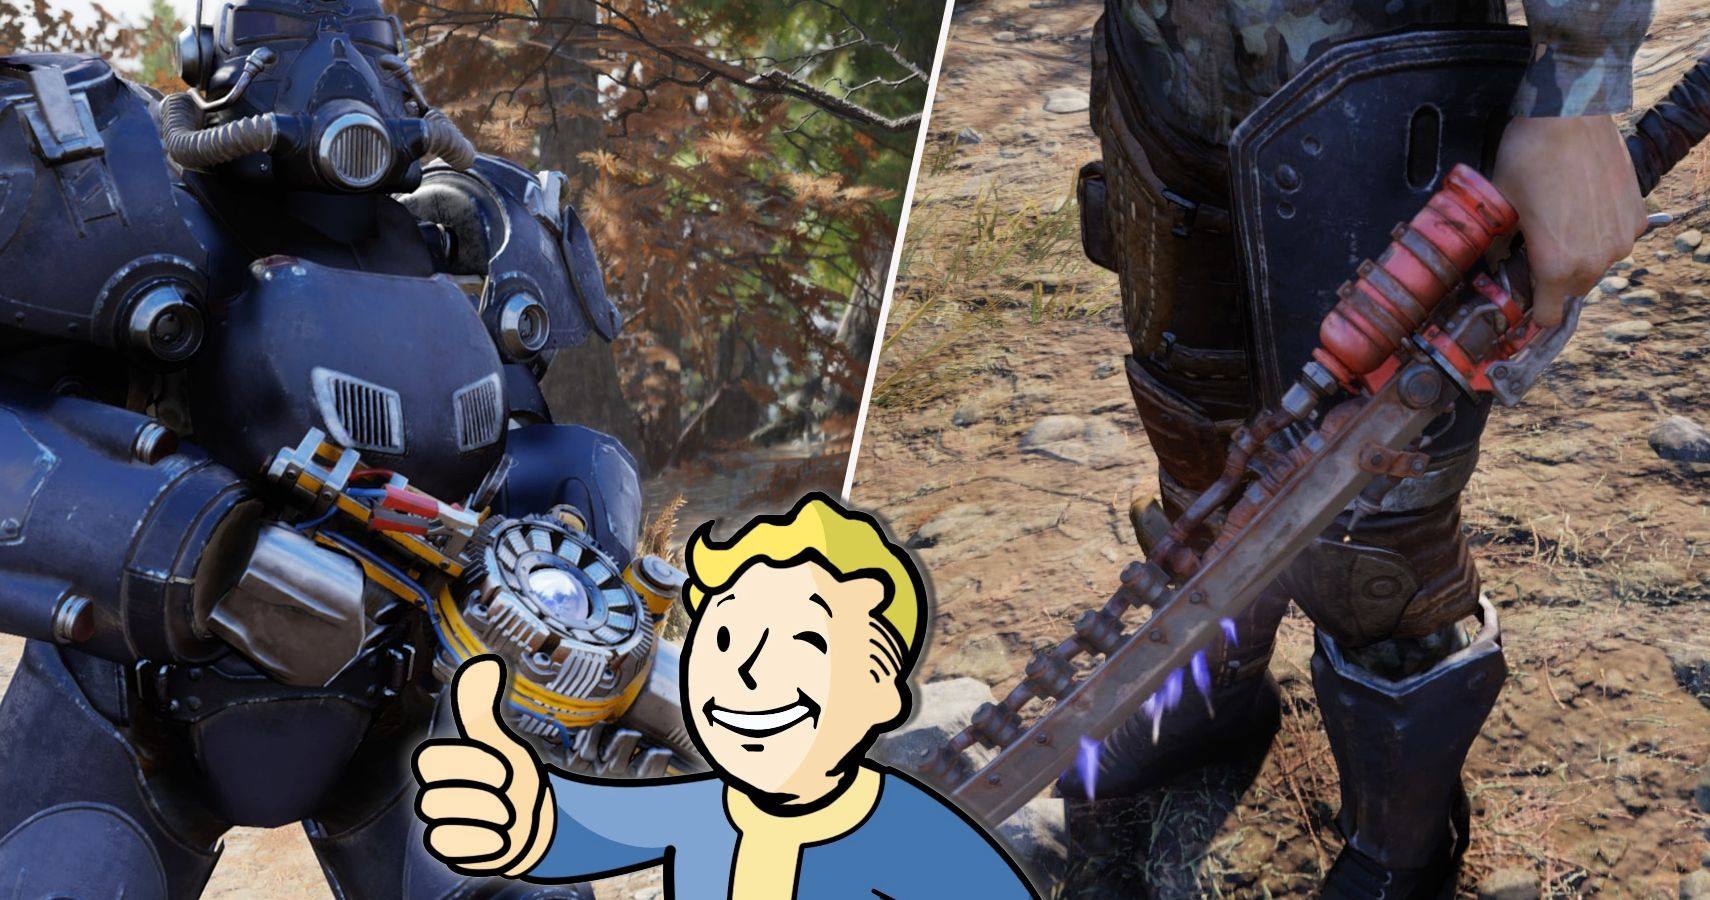 20 Strongest Items In Fallout 76 (And 10 That Aren't Worth The